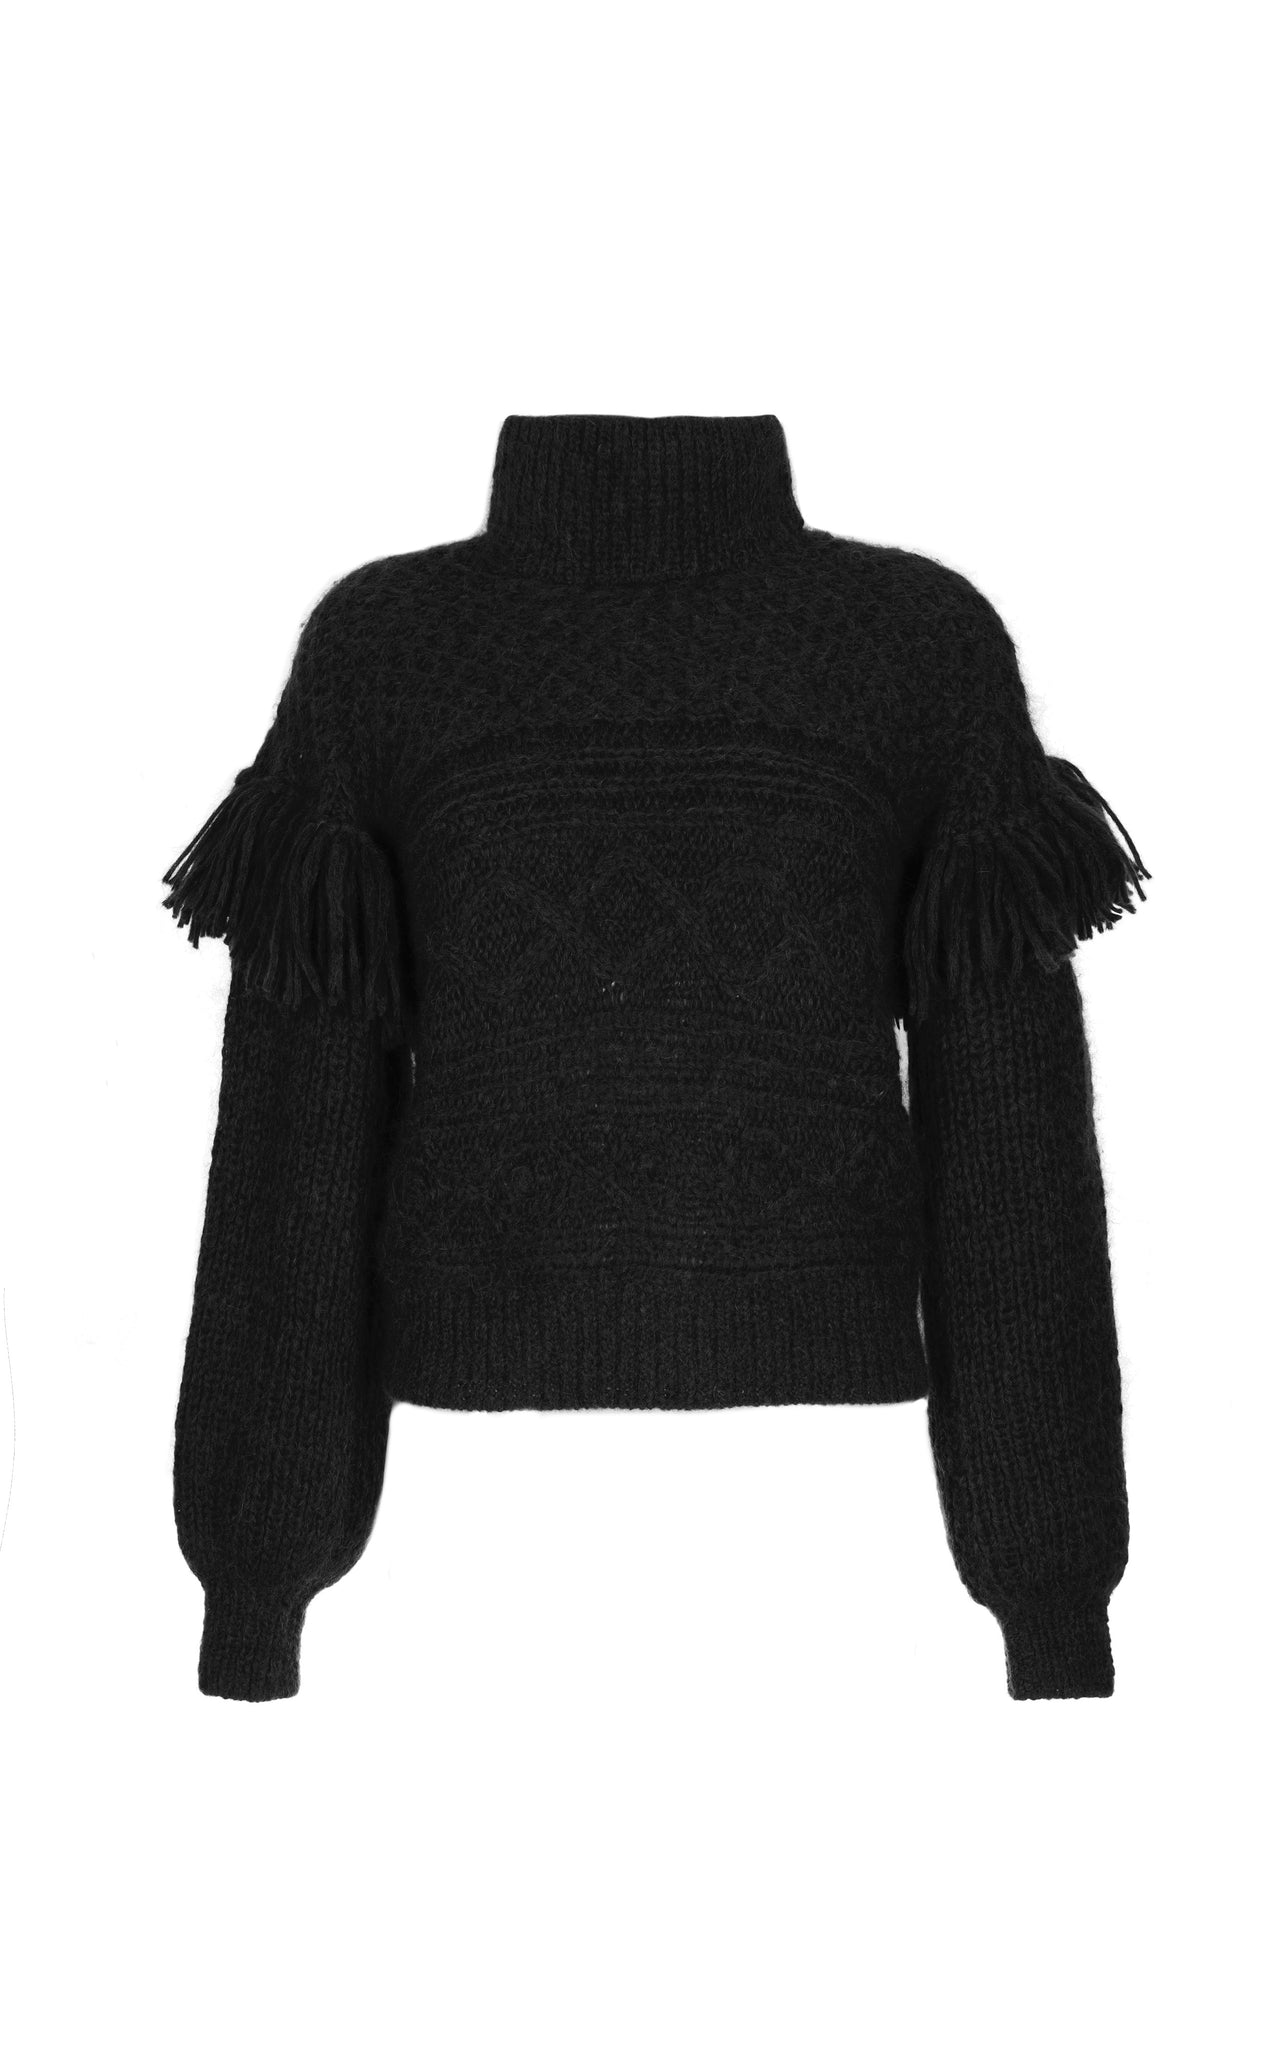 CLO SWEATER BLACK